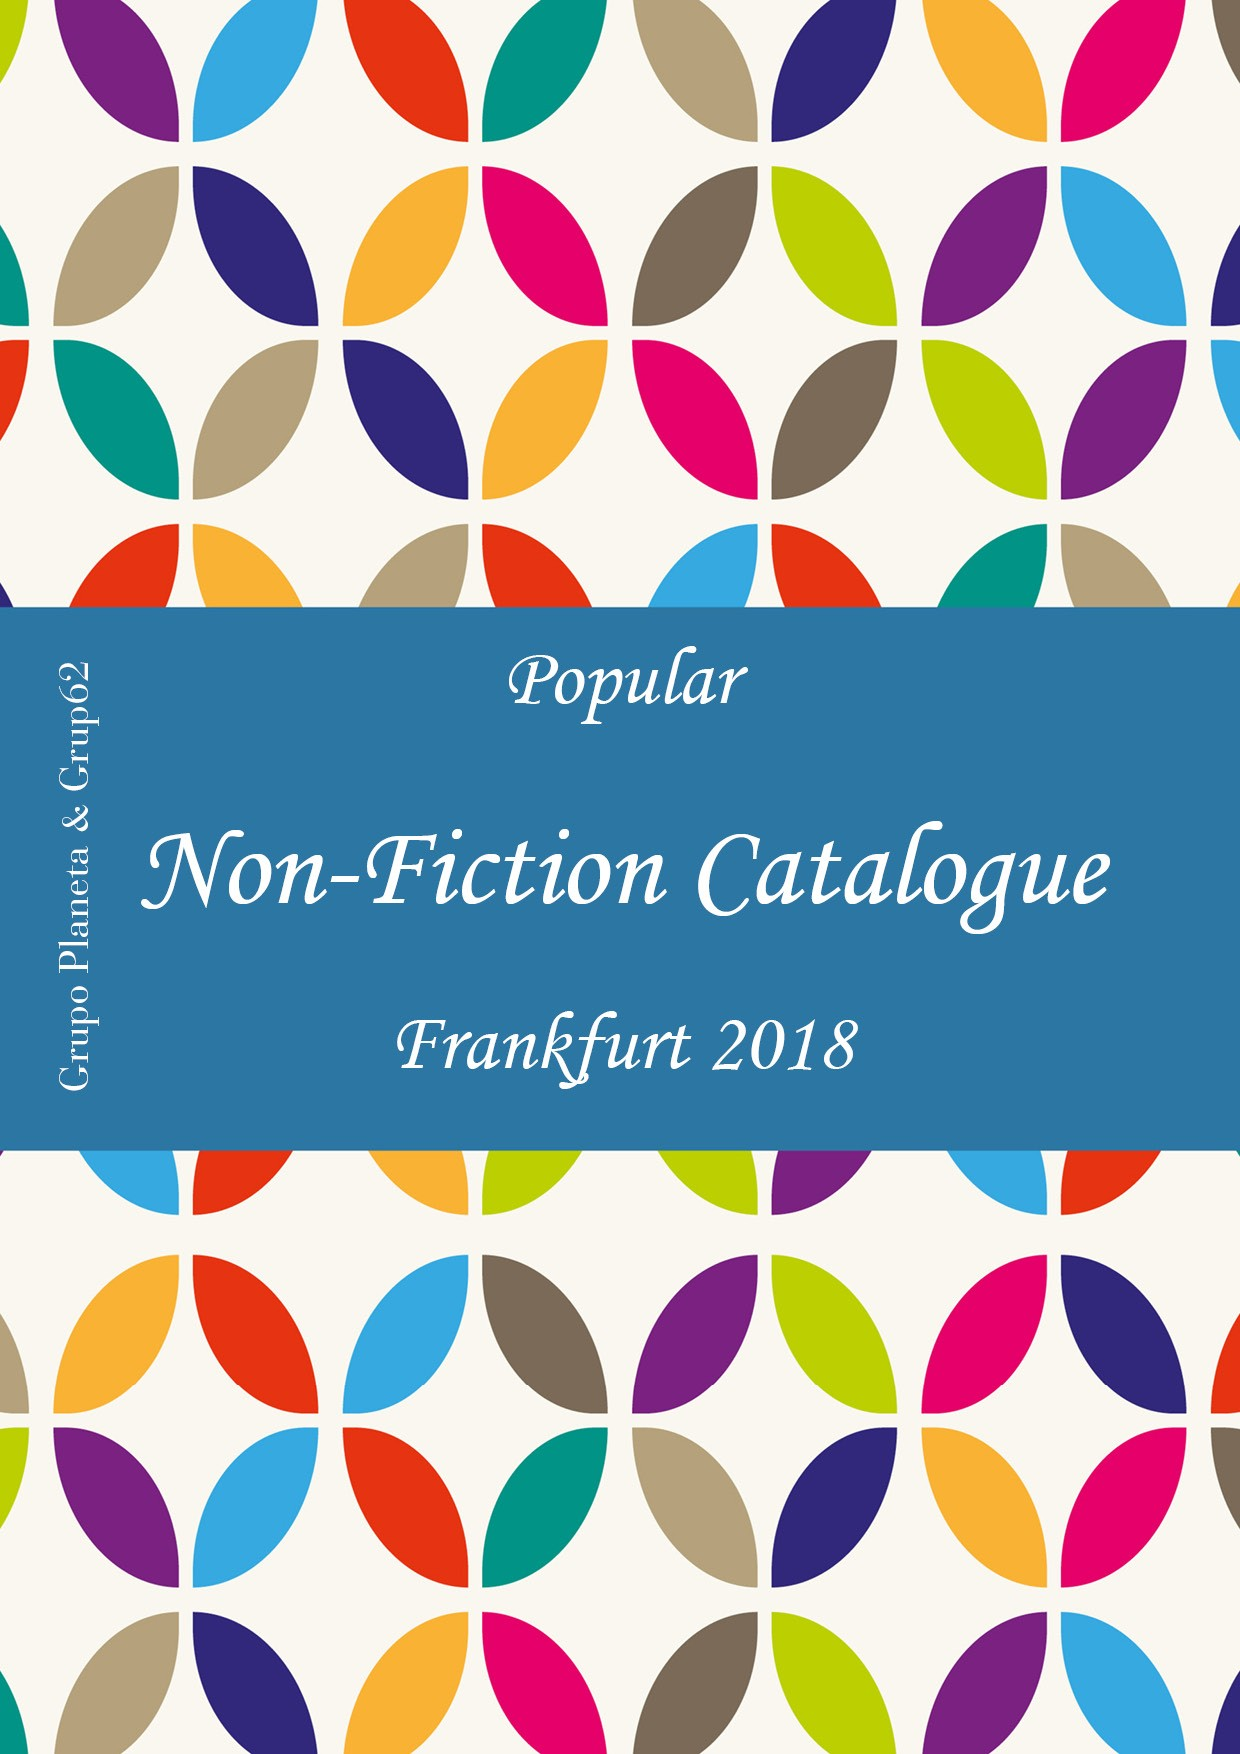 Popular Non-Fiction Catalogue Frankfurt 2018